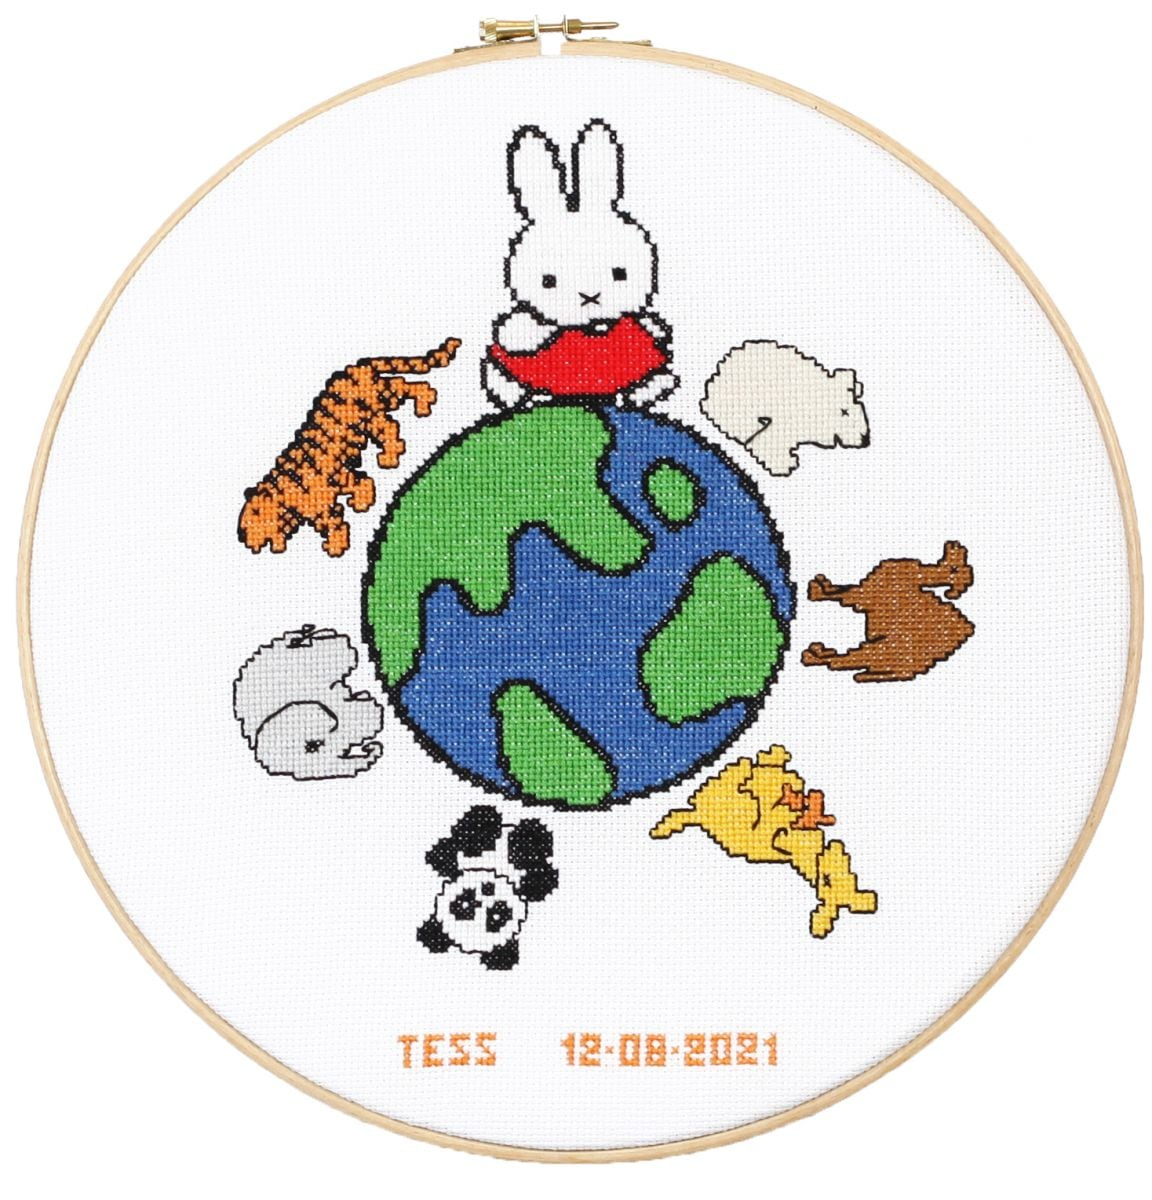 embroidery kit miffy world birthday sampler dick bruna